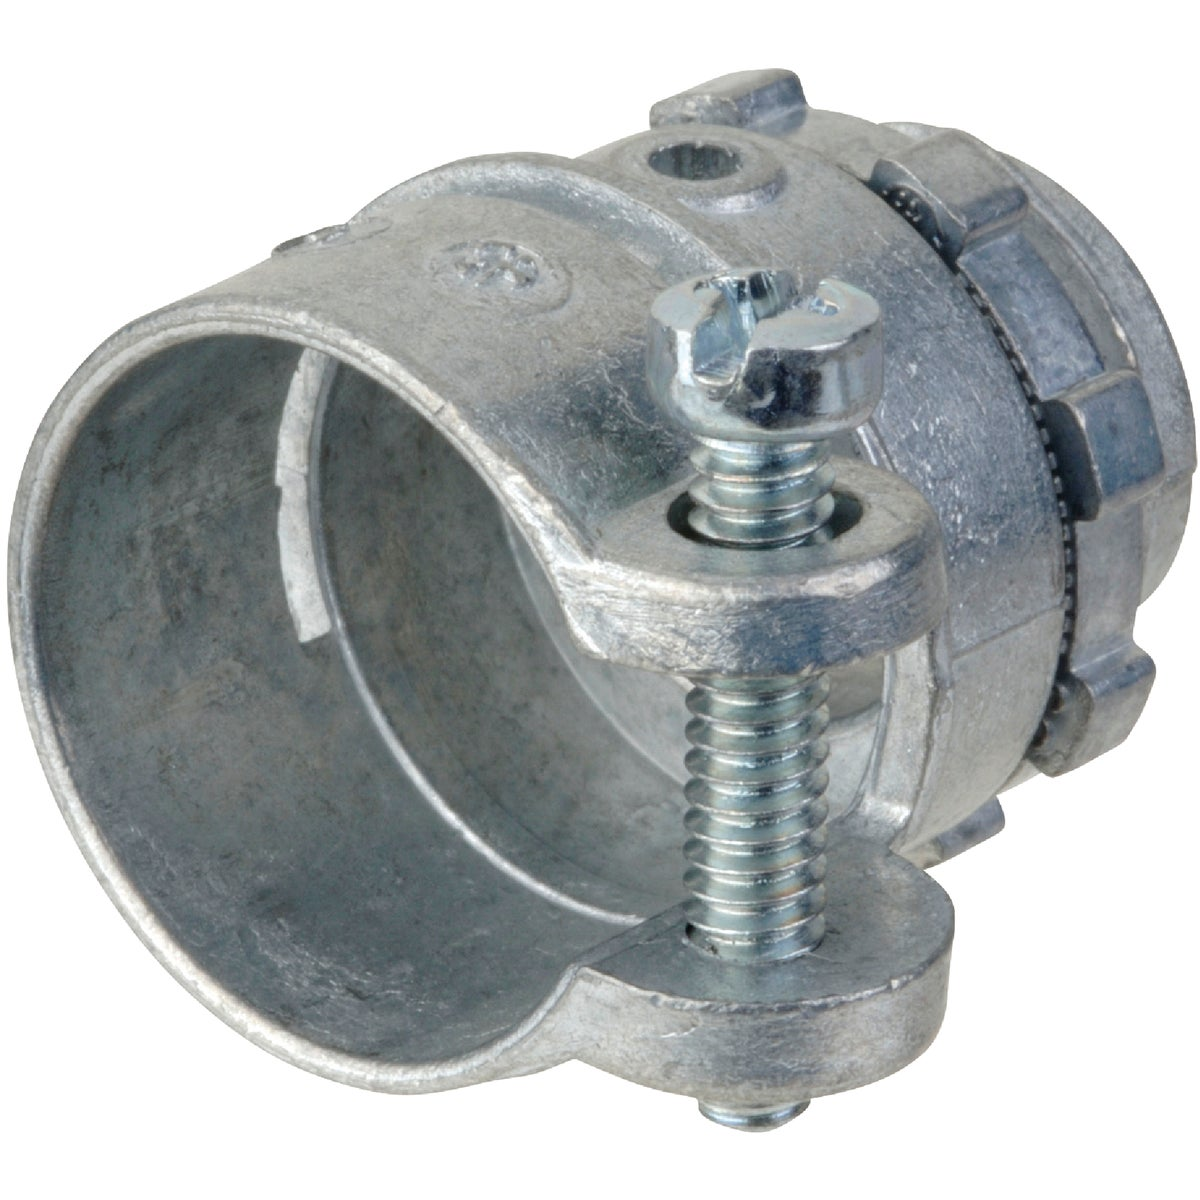 3PC 1/2 FLEX CONNECTOR - XC2703 by Thomas & Betts